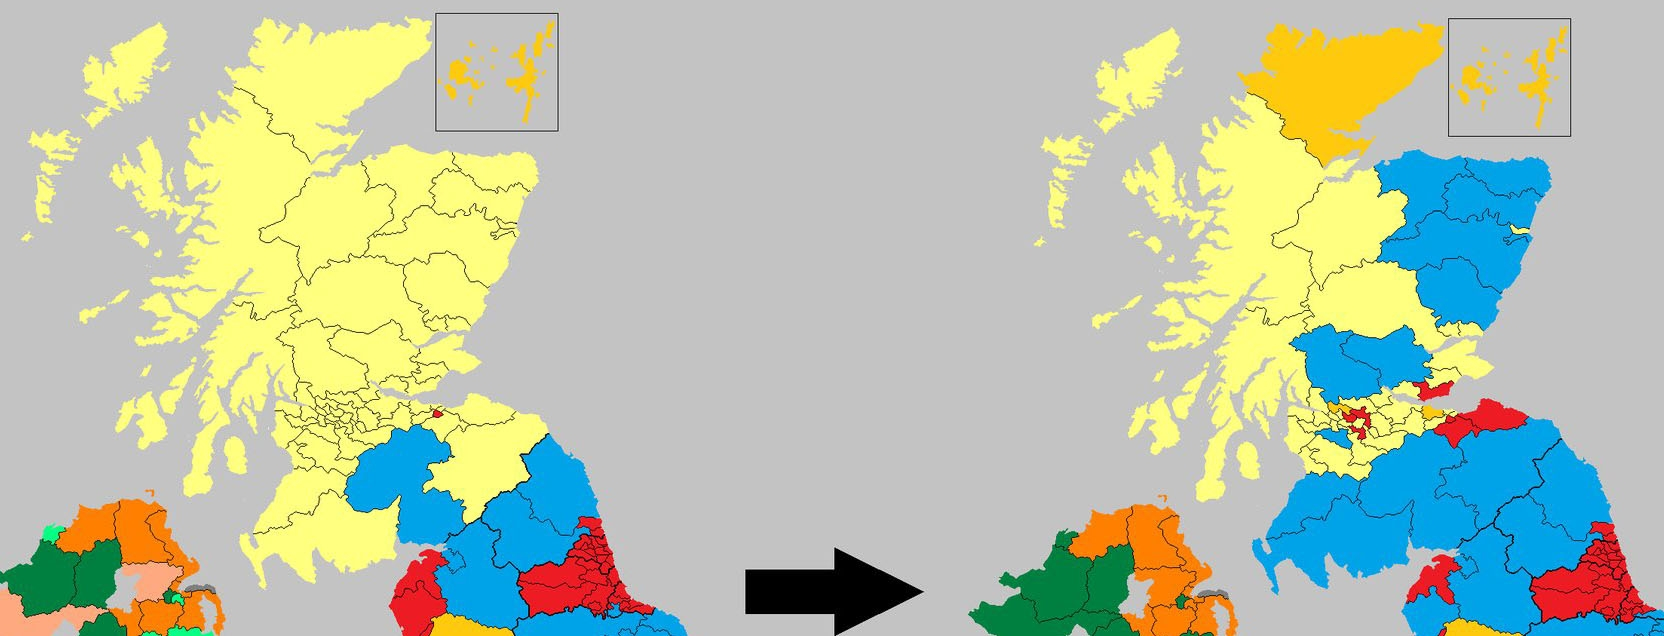 The change in Scotland's political Map from 2015 to 2017. Image Credit: @ElectionMapsUK; cropped by Wesley Hutchins